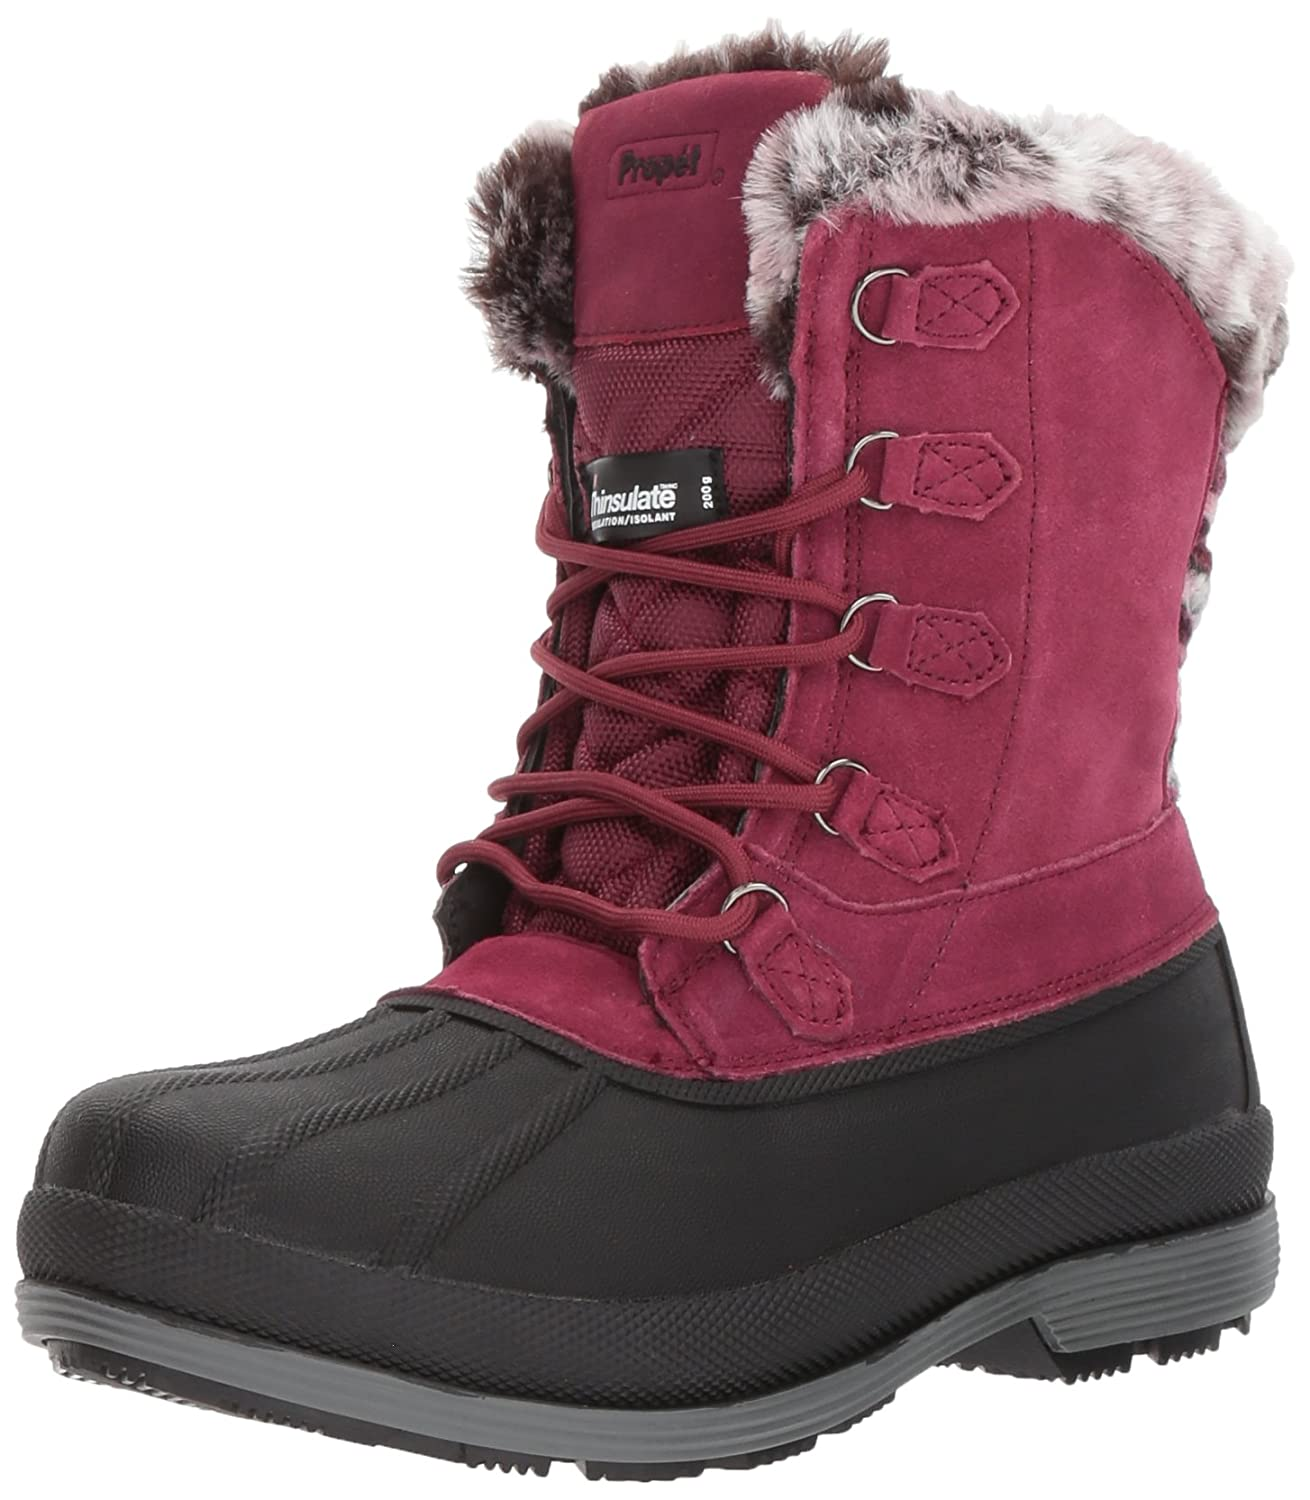 Propet Women's Lumi Tall Lace Snow Boot B01N6BCMKG 9.5 2E US|Berry